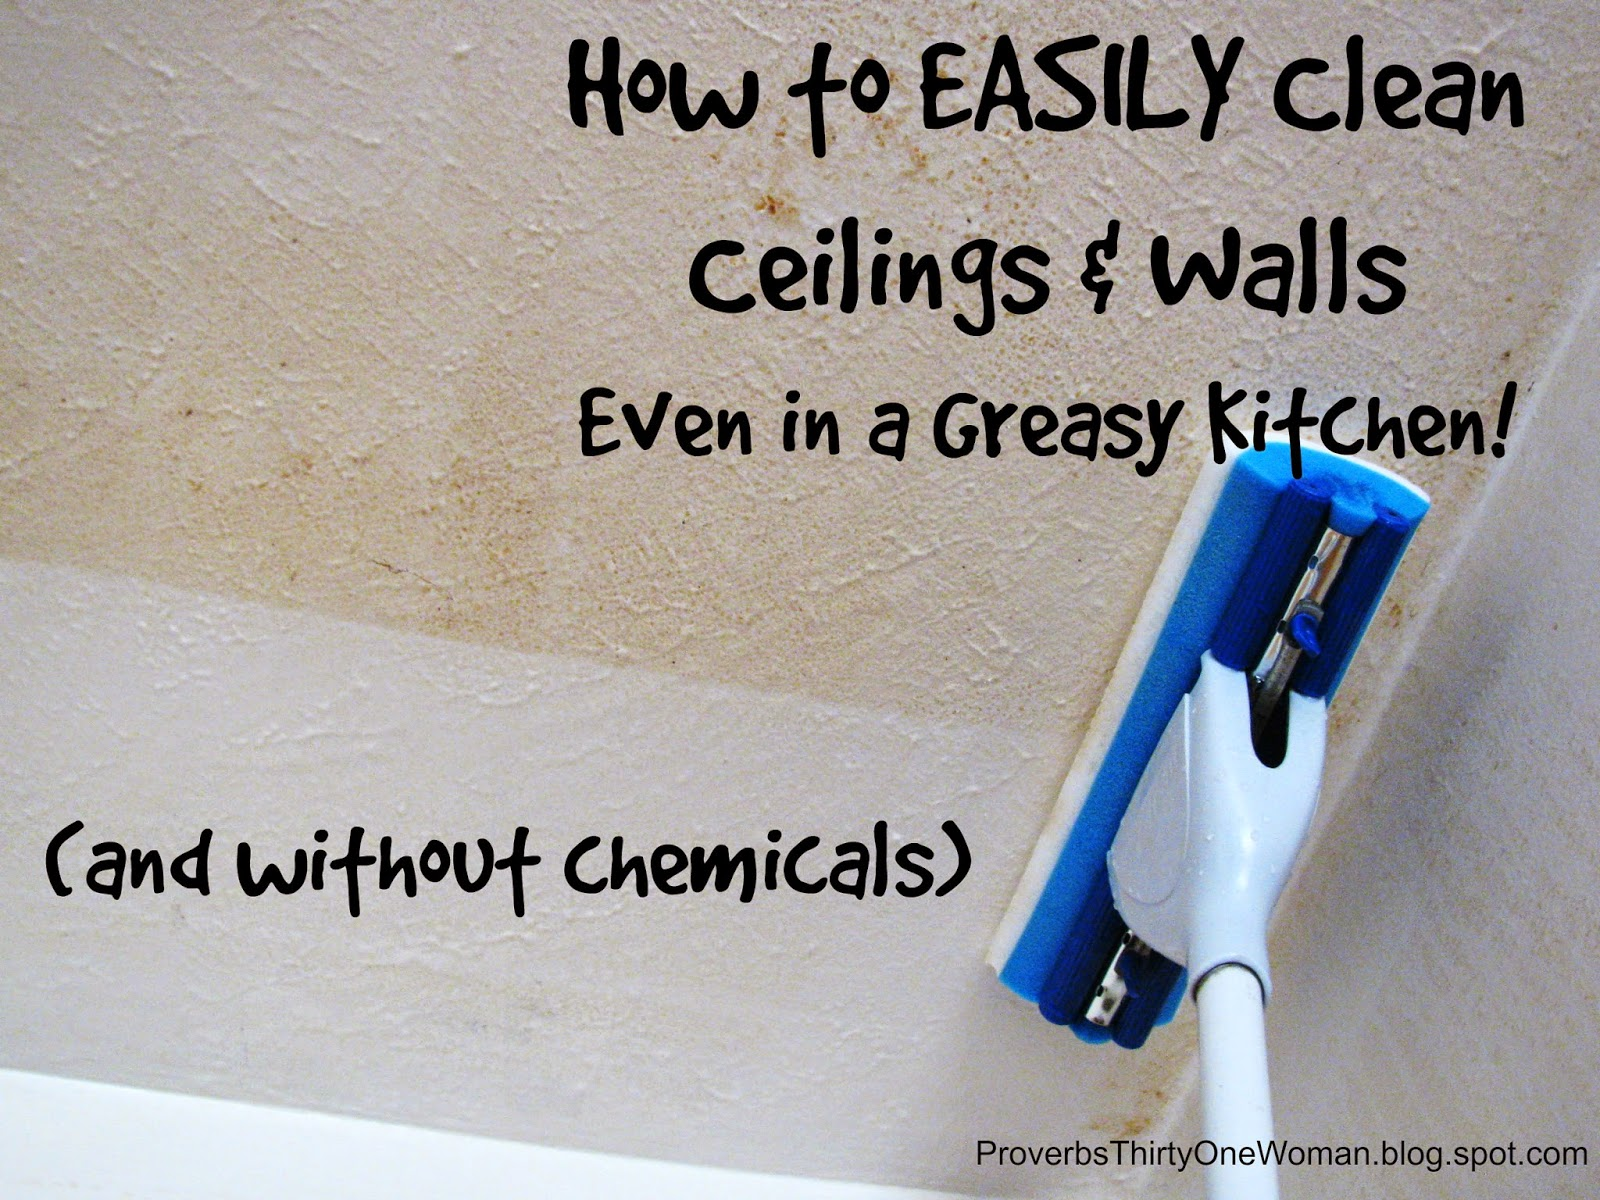 How to EASILY Clean Ceilings u0026 Walls - Even in a Greasy Kitchen! : Proverbs 31 Woman